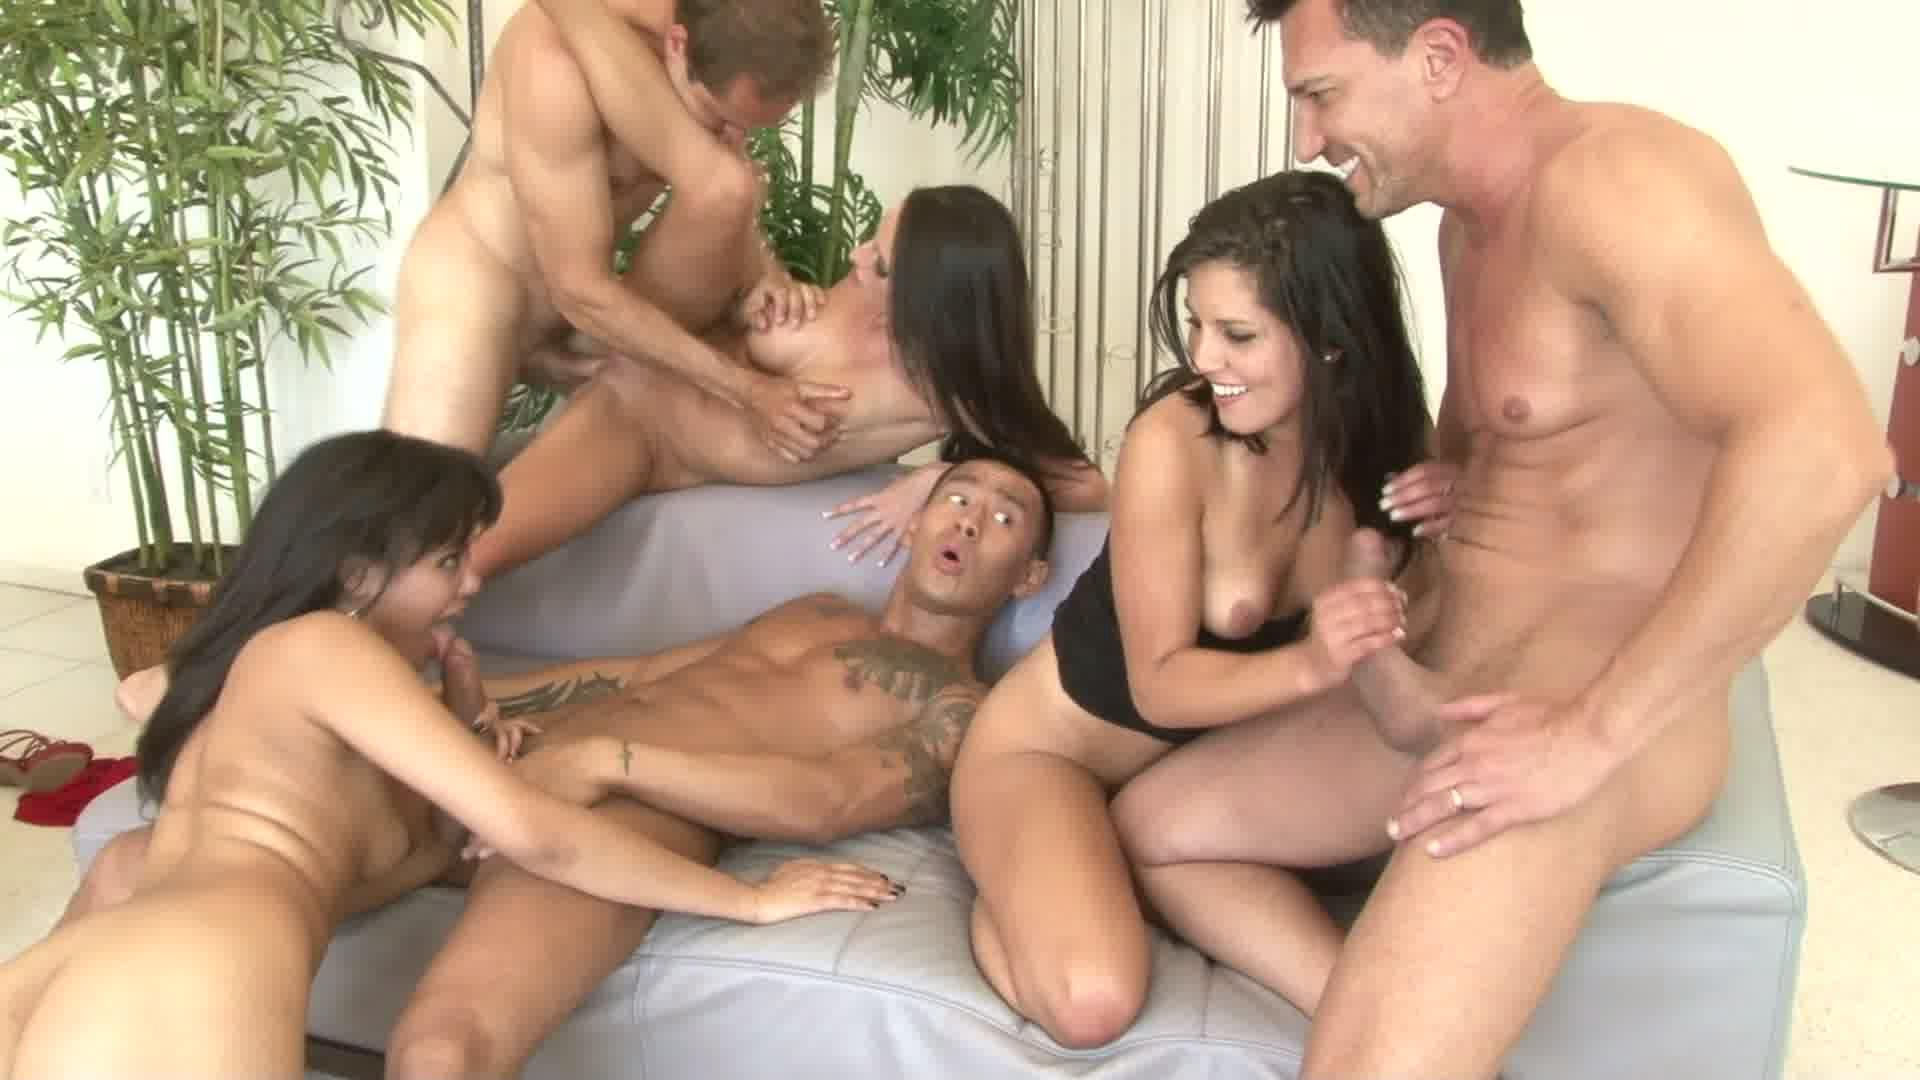 Neighborhood Swingers 5